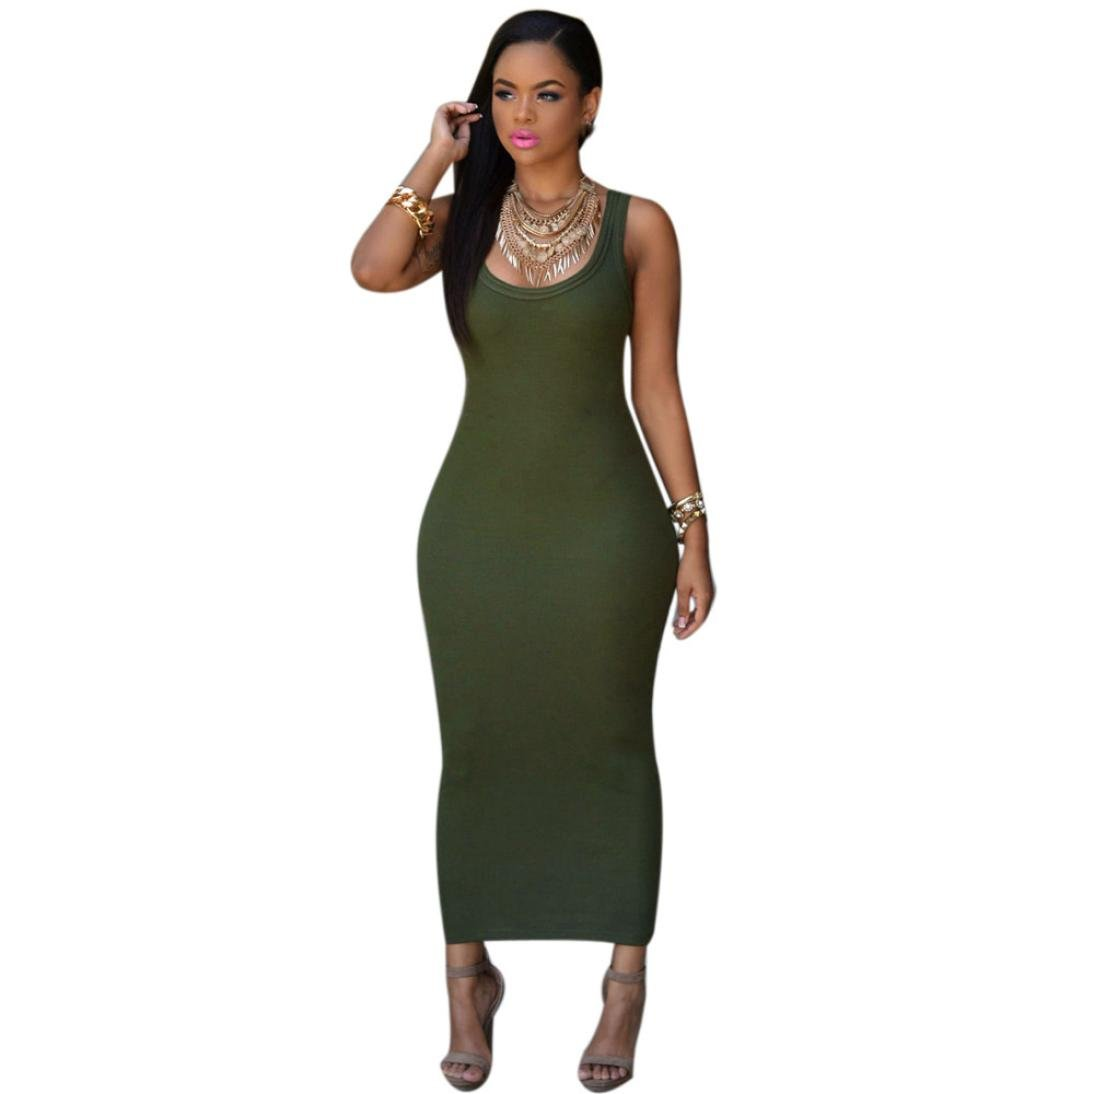 Usstore Women Dress Bandage Bodycon Party Cocktail Maxi Long Dresses (Asia S, Army Green)